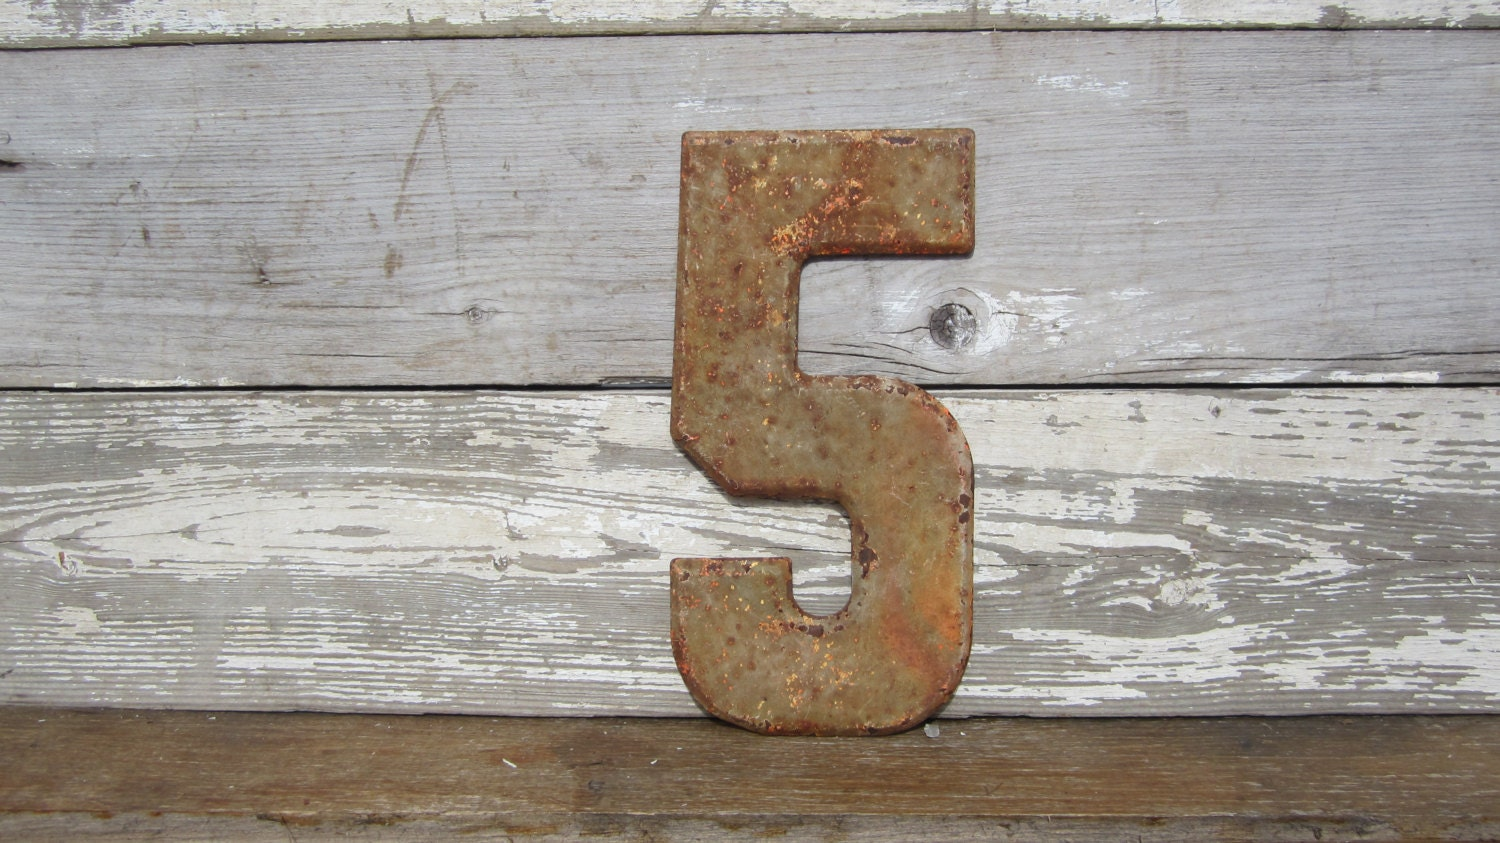 Large 10 inch Vintage Metal Chippy Number 5 Rust Rusted Sign Painted Antique Marquee Rusted Metal - TheOldTimeJunkShop